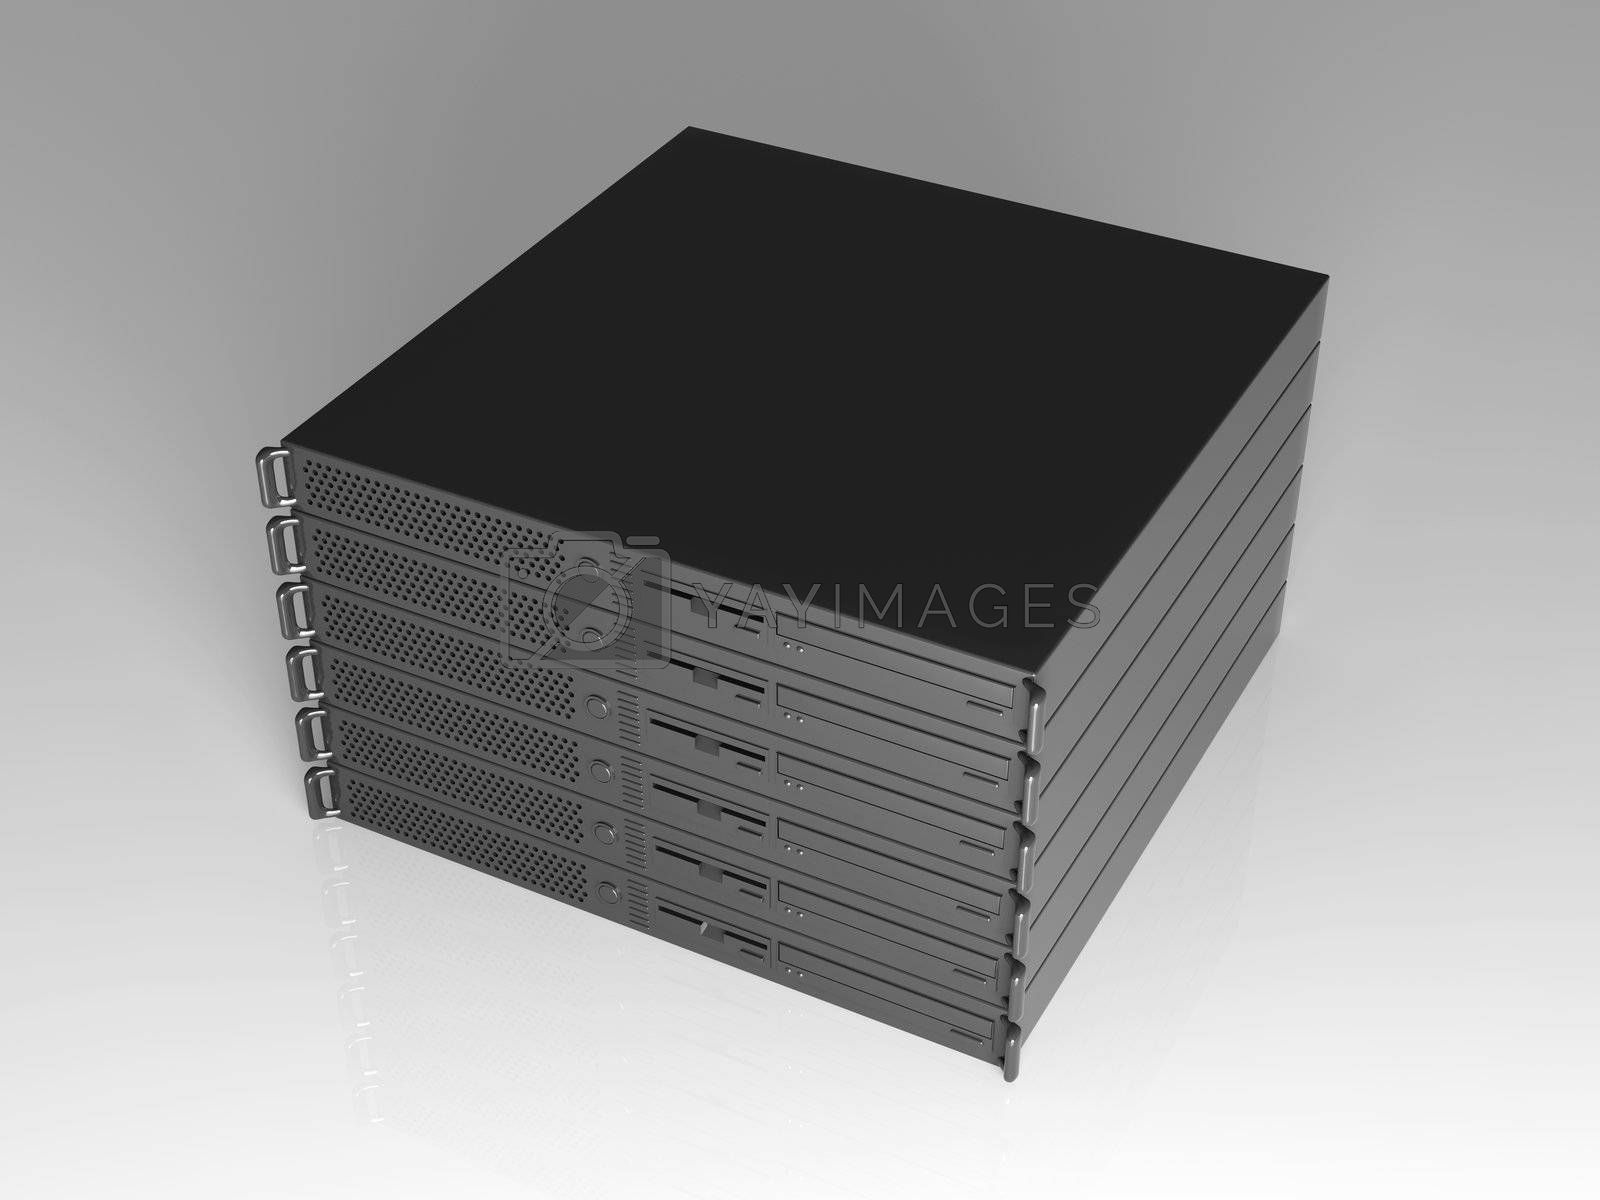 19inch Server Stack by Spectral